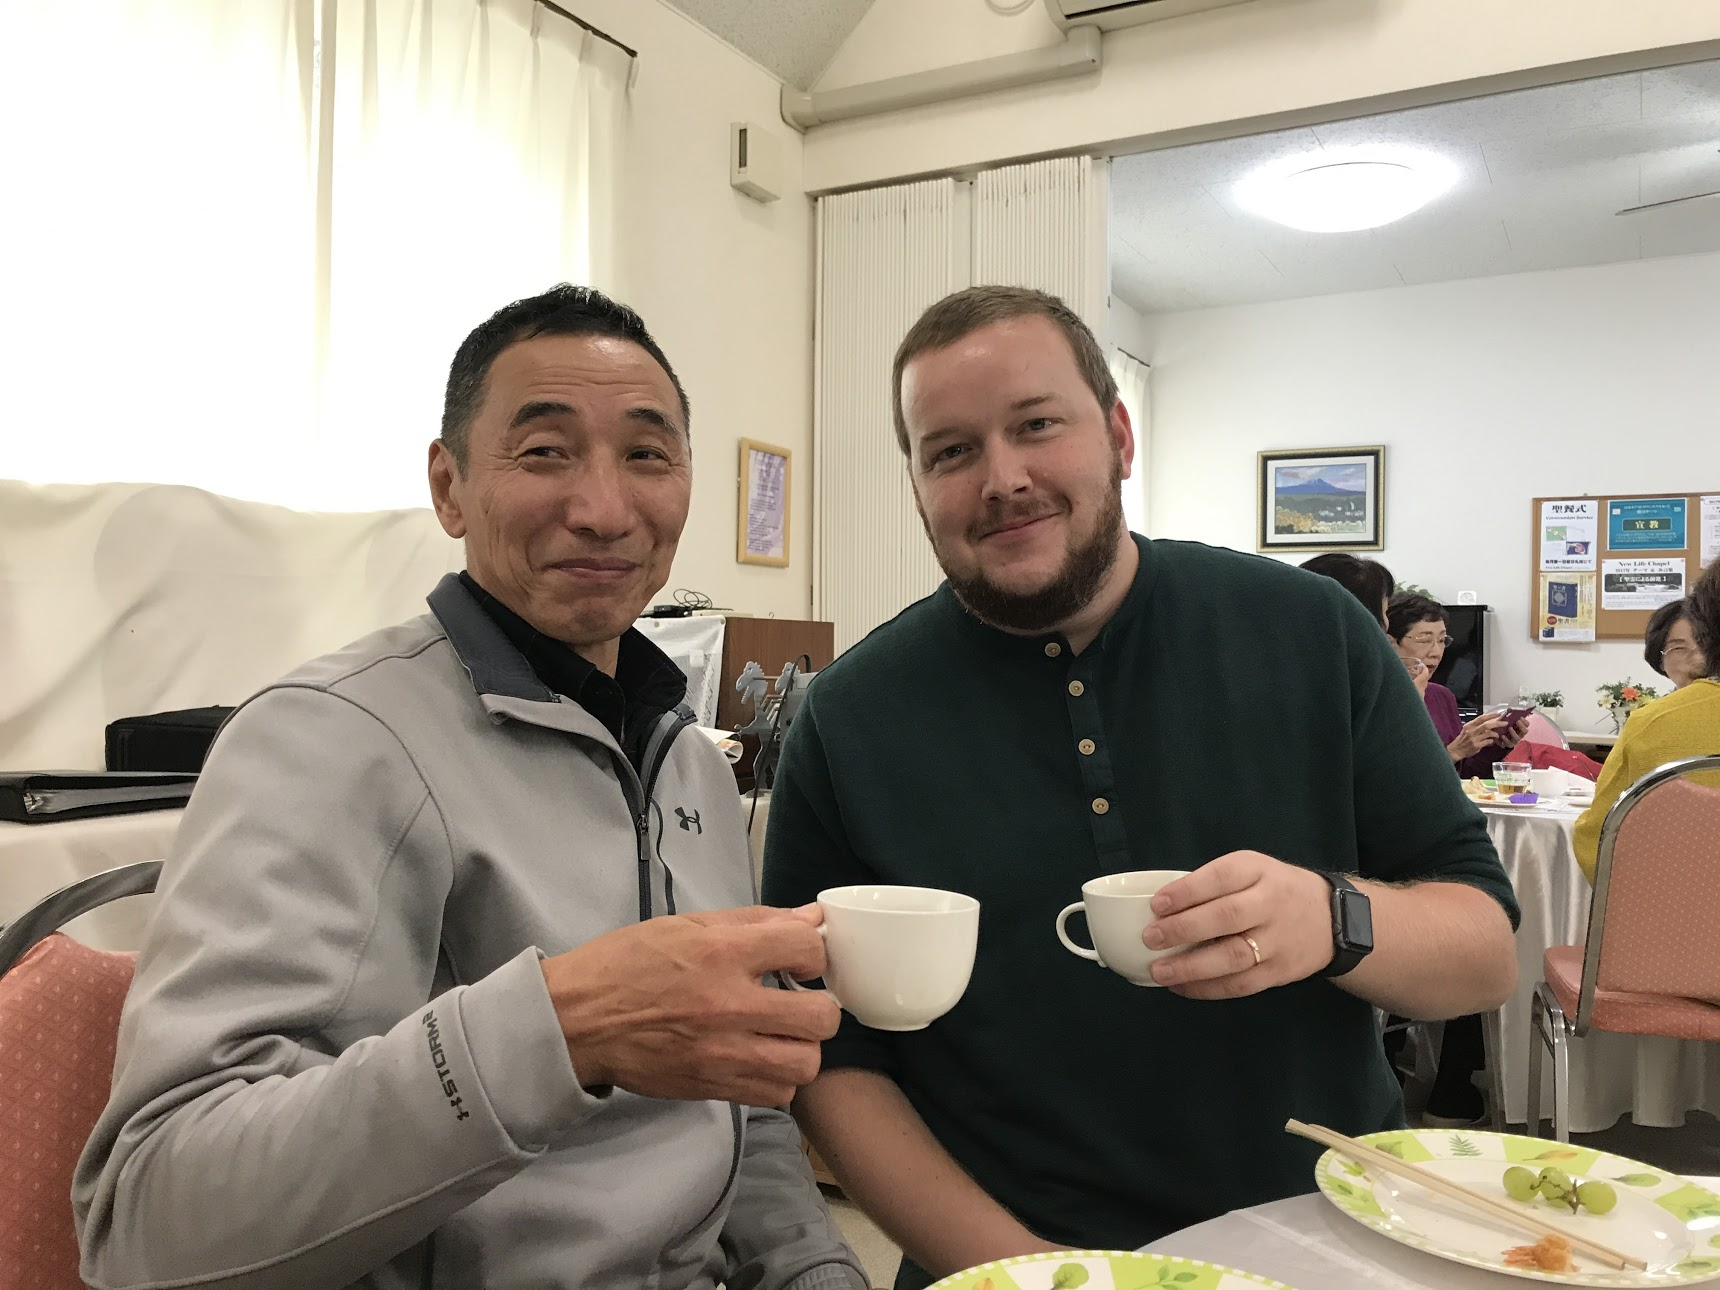 My new friend, Hitoshi! We had a great discussion over coffee for several hours. He makes crosses and signs for churches and offered his help if we need it.